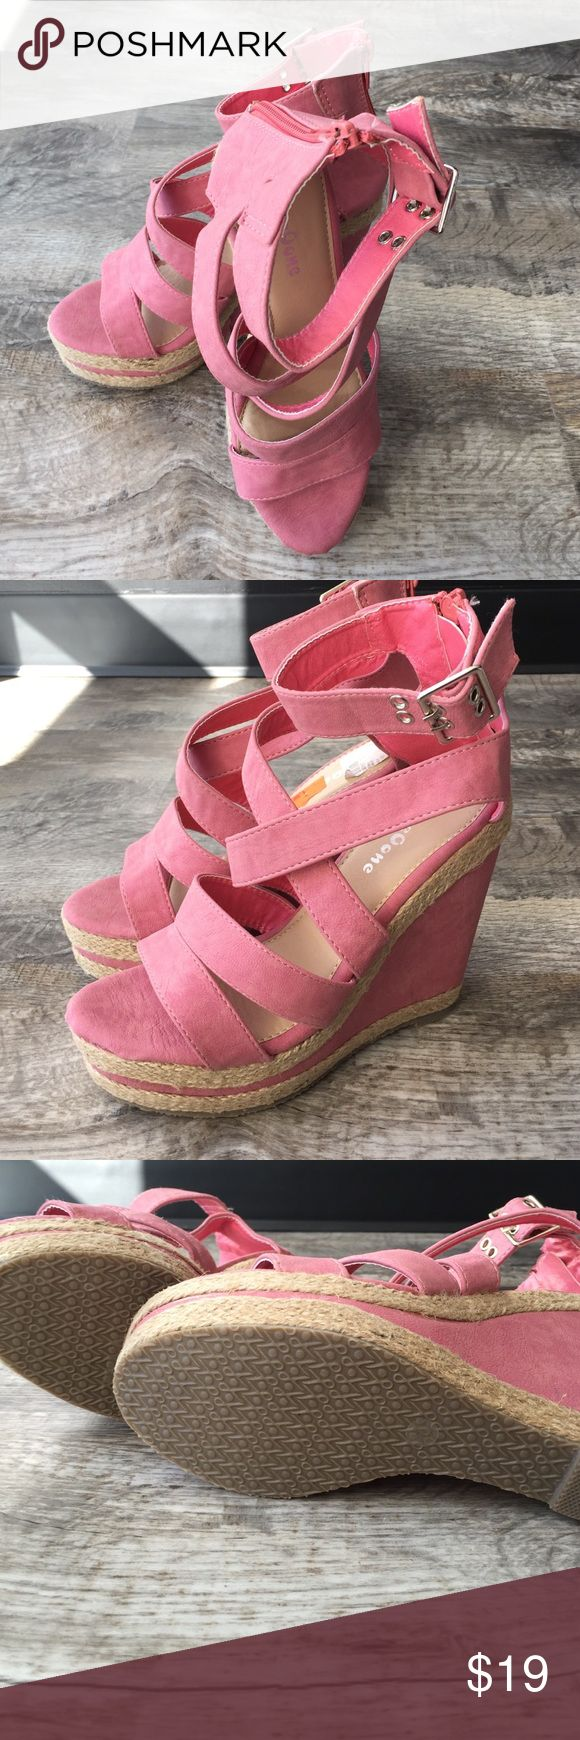 Am pink wedge heels sandals 5.5 new Am pink wedge heels sandals 5.5 new never worn oneoone Shoes